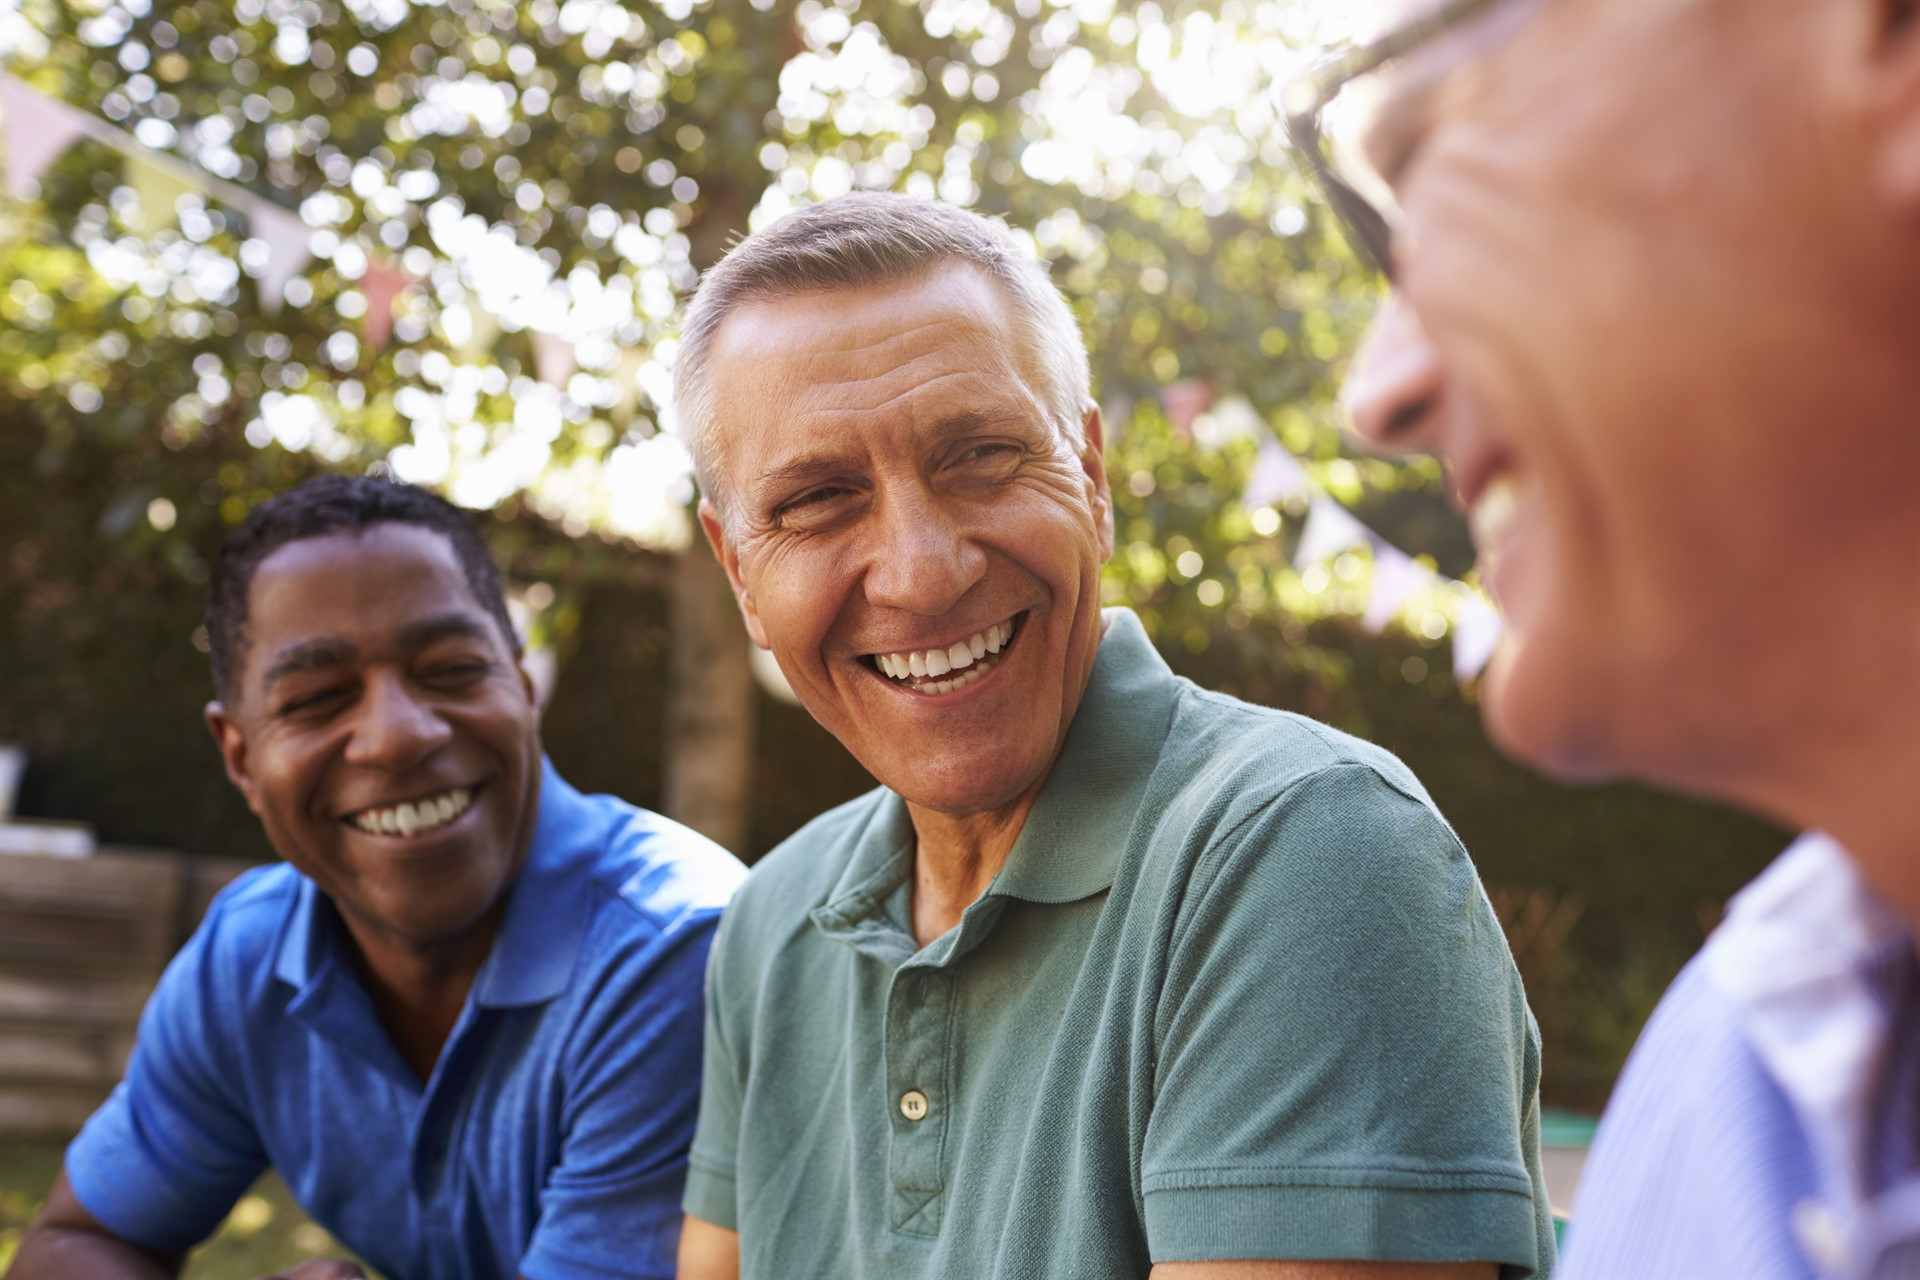 Men's Health Screening to take place in June